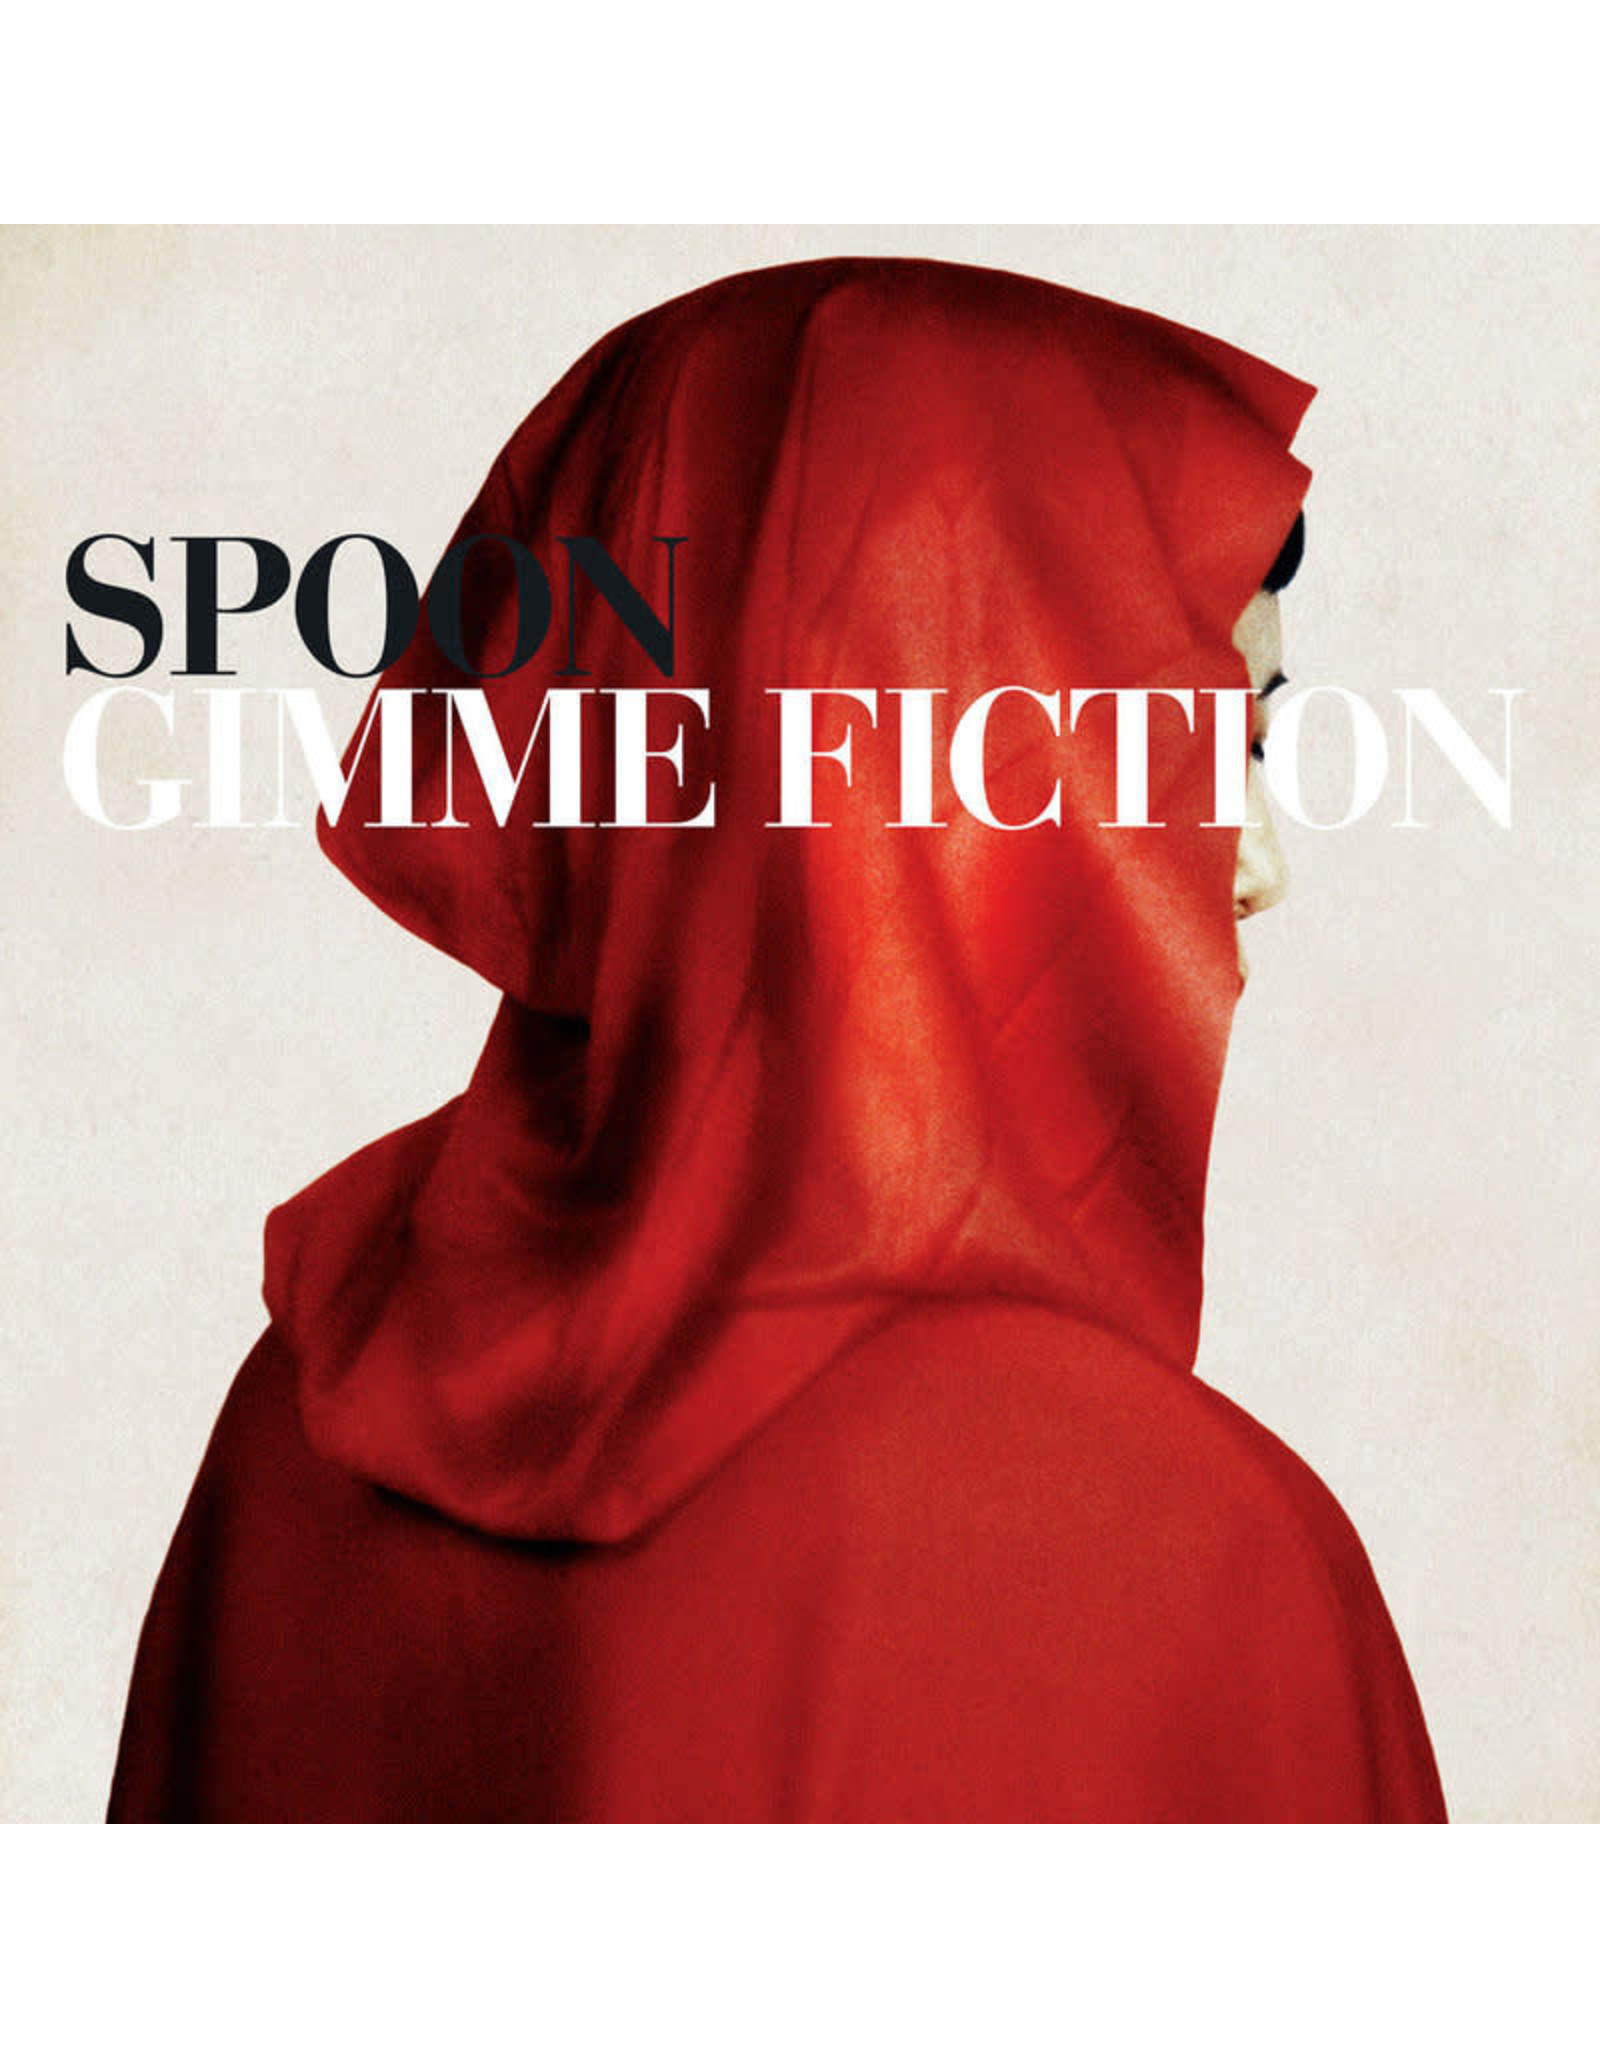 Spoon - Gimme Fiction (red/white indie shop LP)